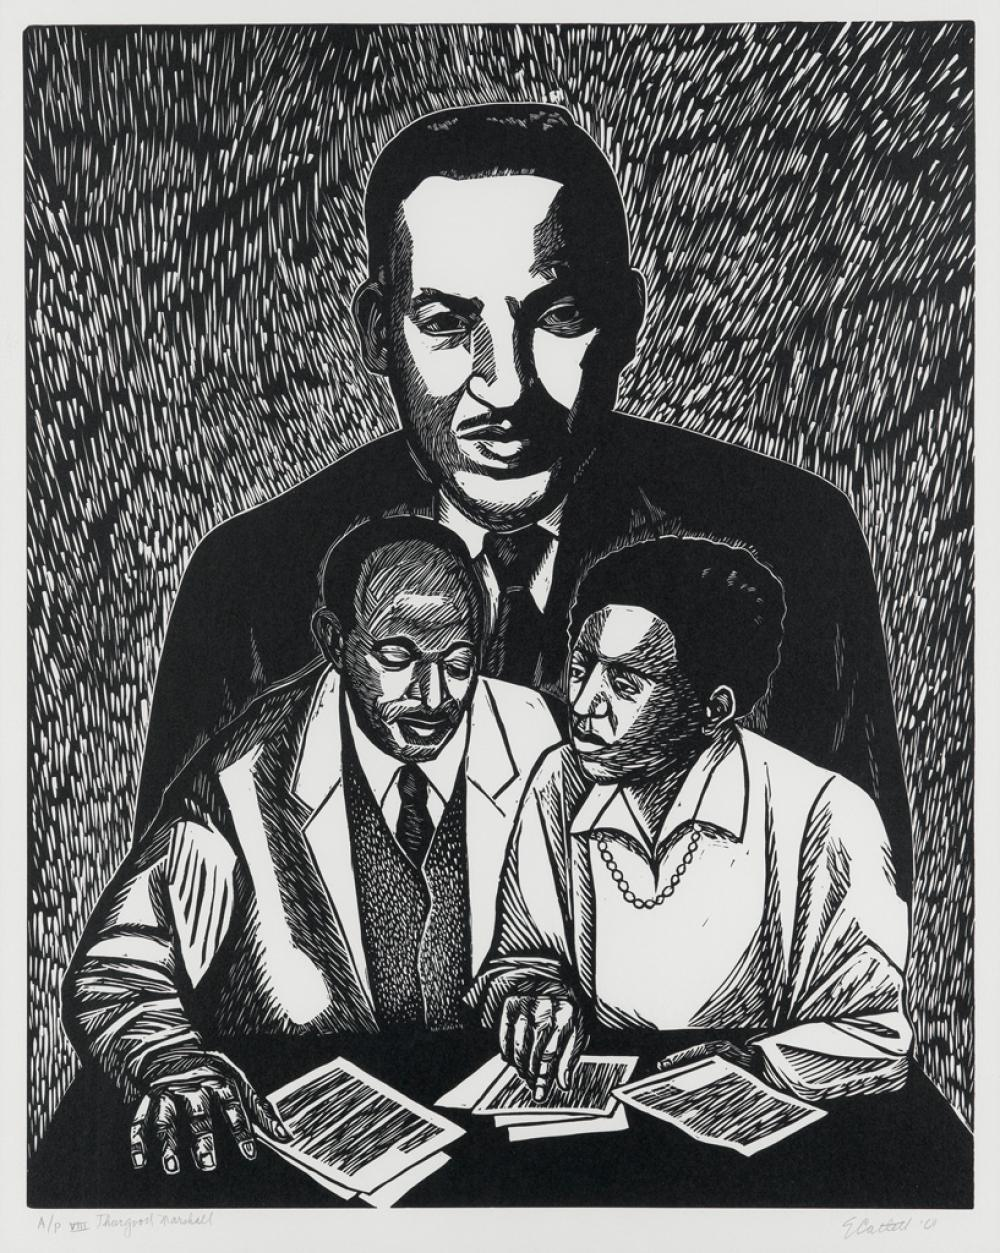 ELIZABETH CATLETT (1915 - 2012) Thurgood Marshall.